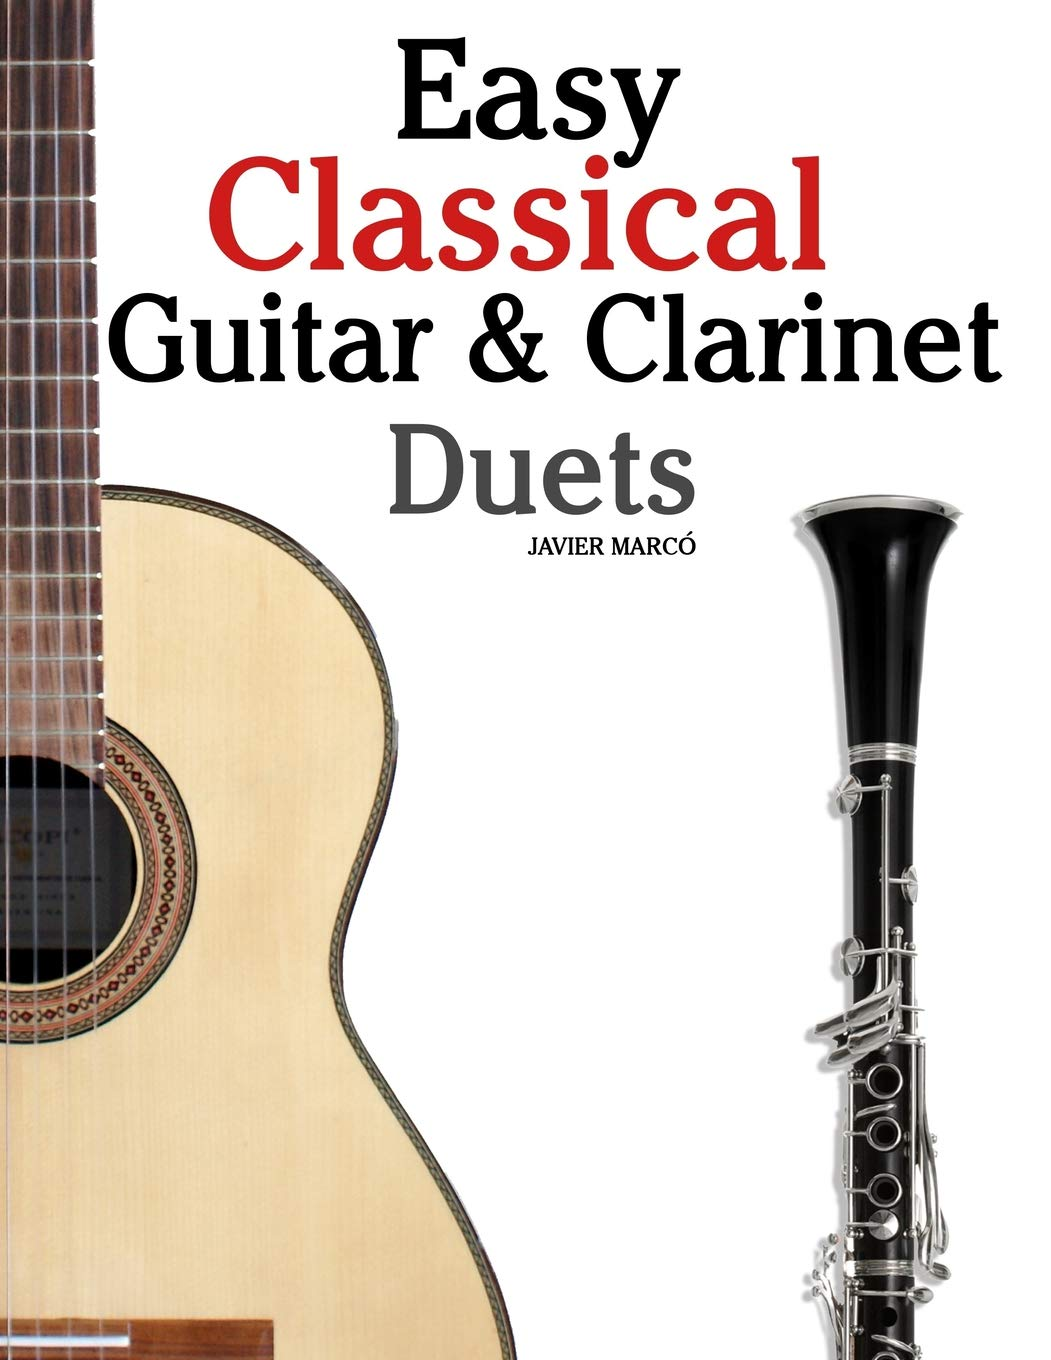 Easy Classical Guitar & Clarinet Duets: Featuring music of